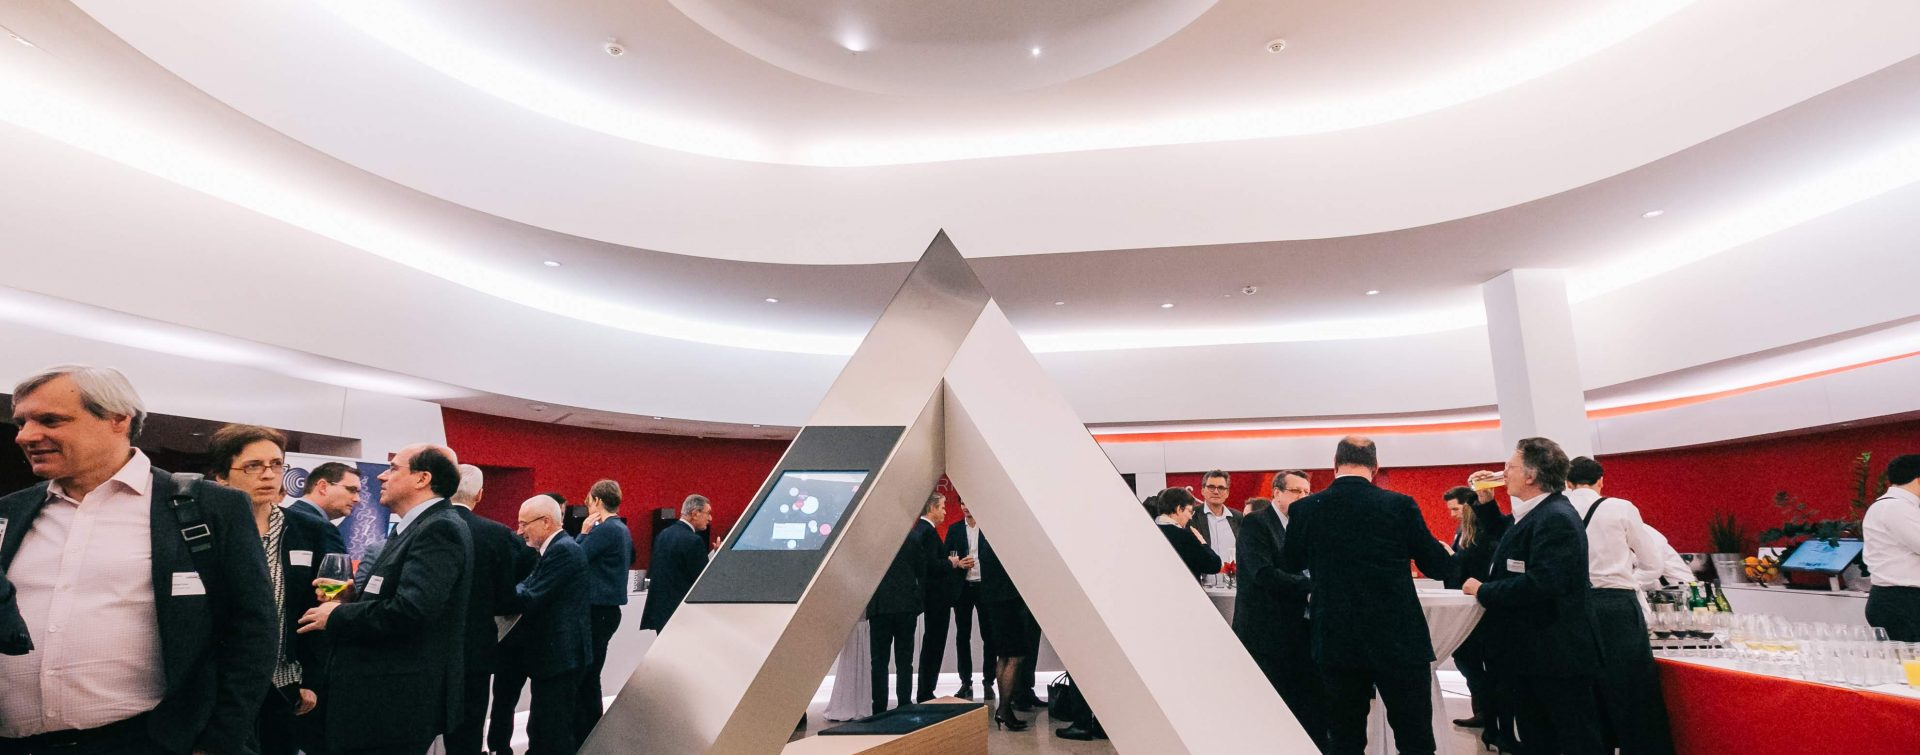 Austrian Standards Headquarters interactive exhibition